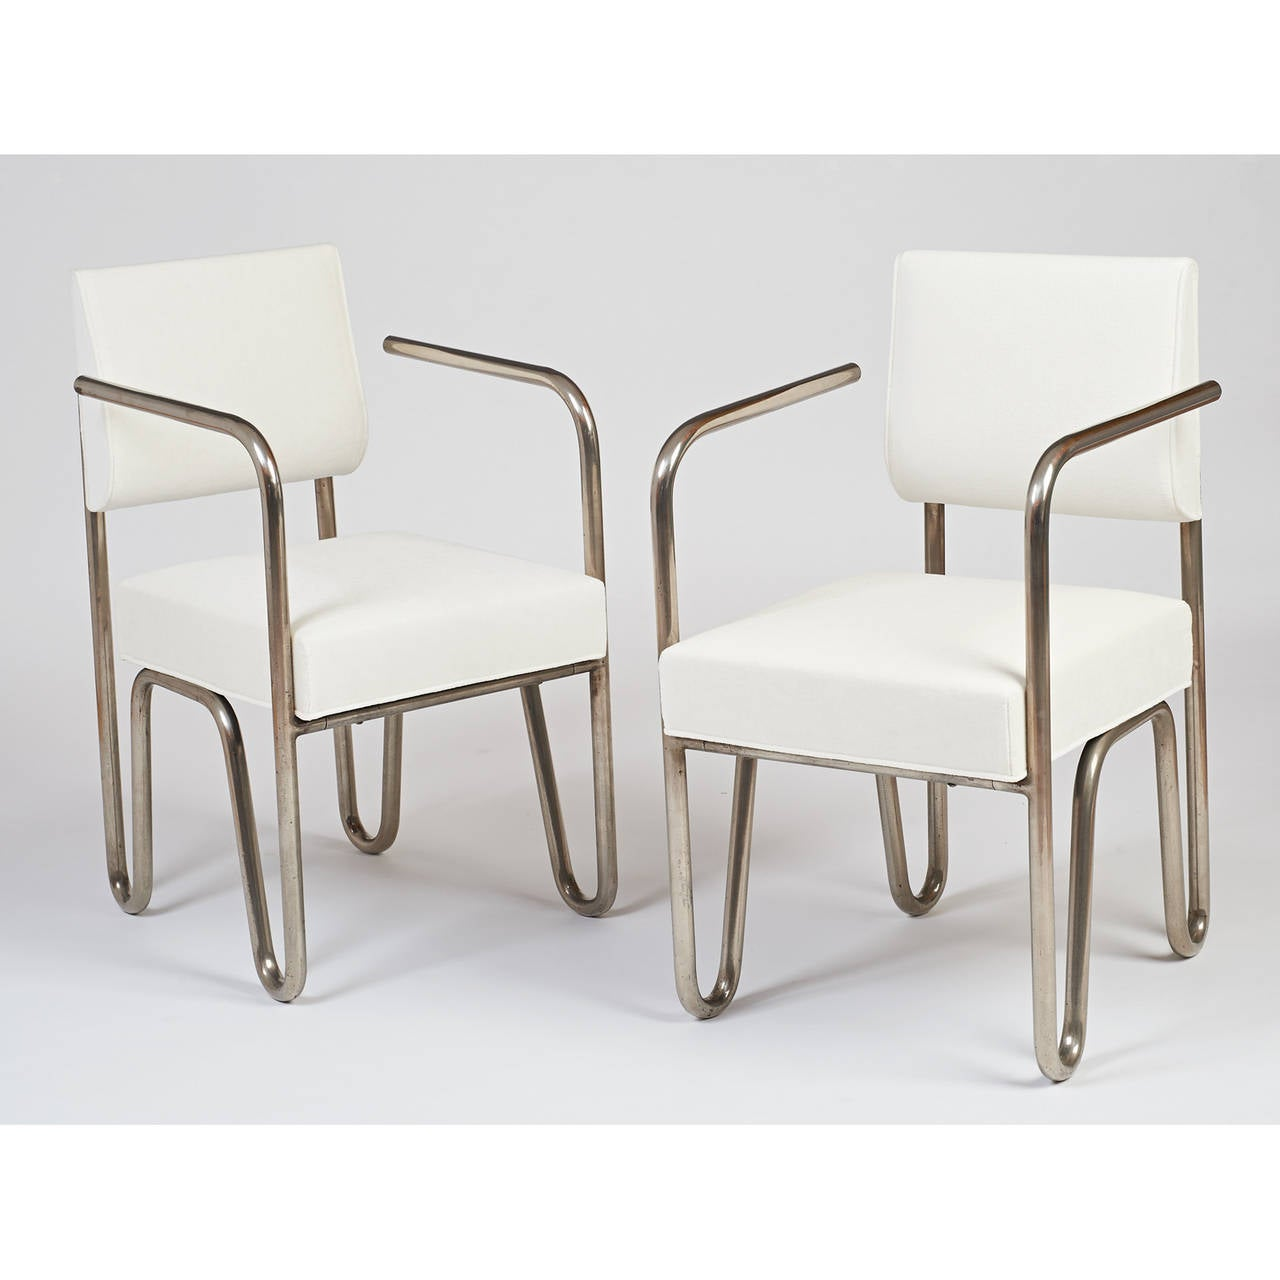 Early Pair of Tubular Metal Chairs by Andre Sornay, ca. 1929 2